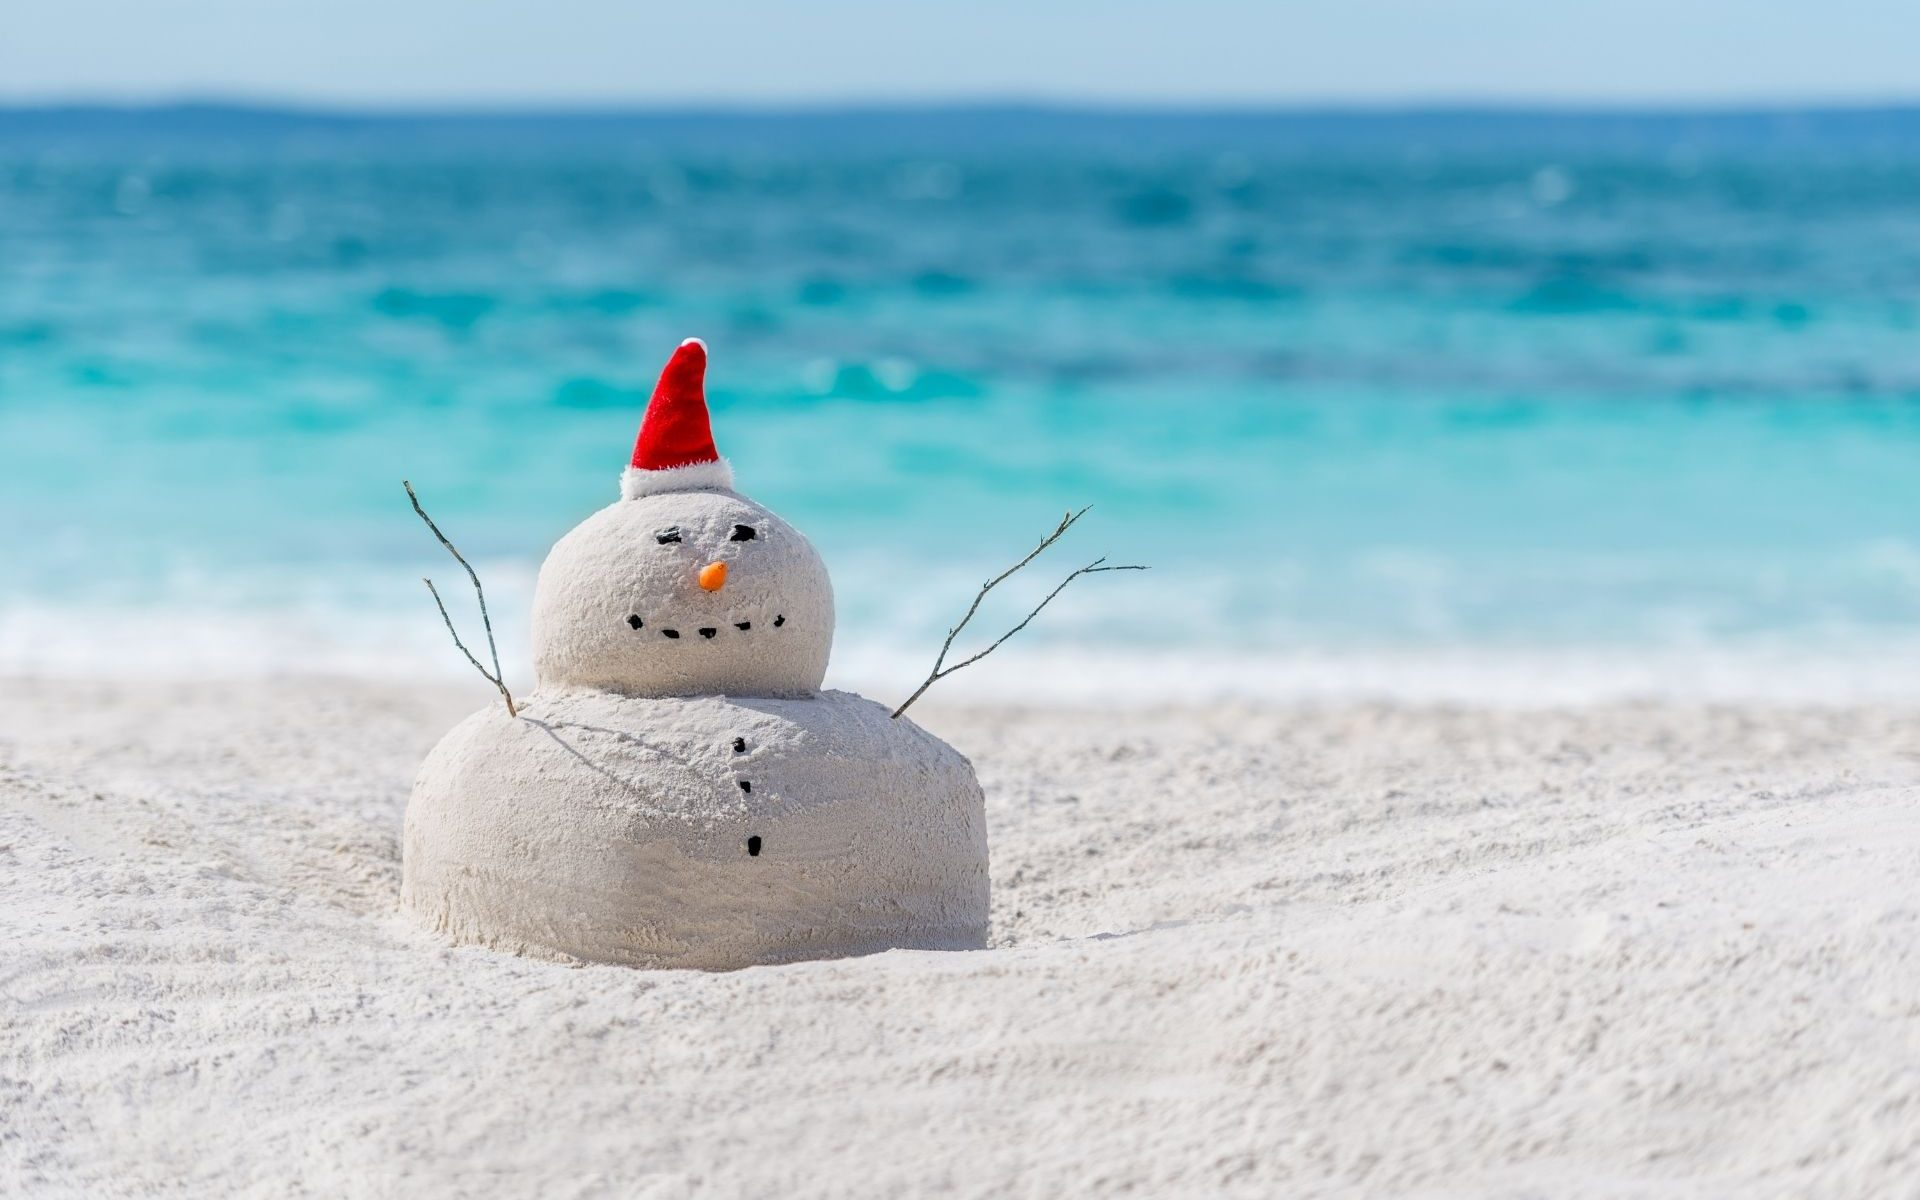 Snowman made from sand in a santa hat on the beach